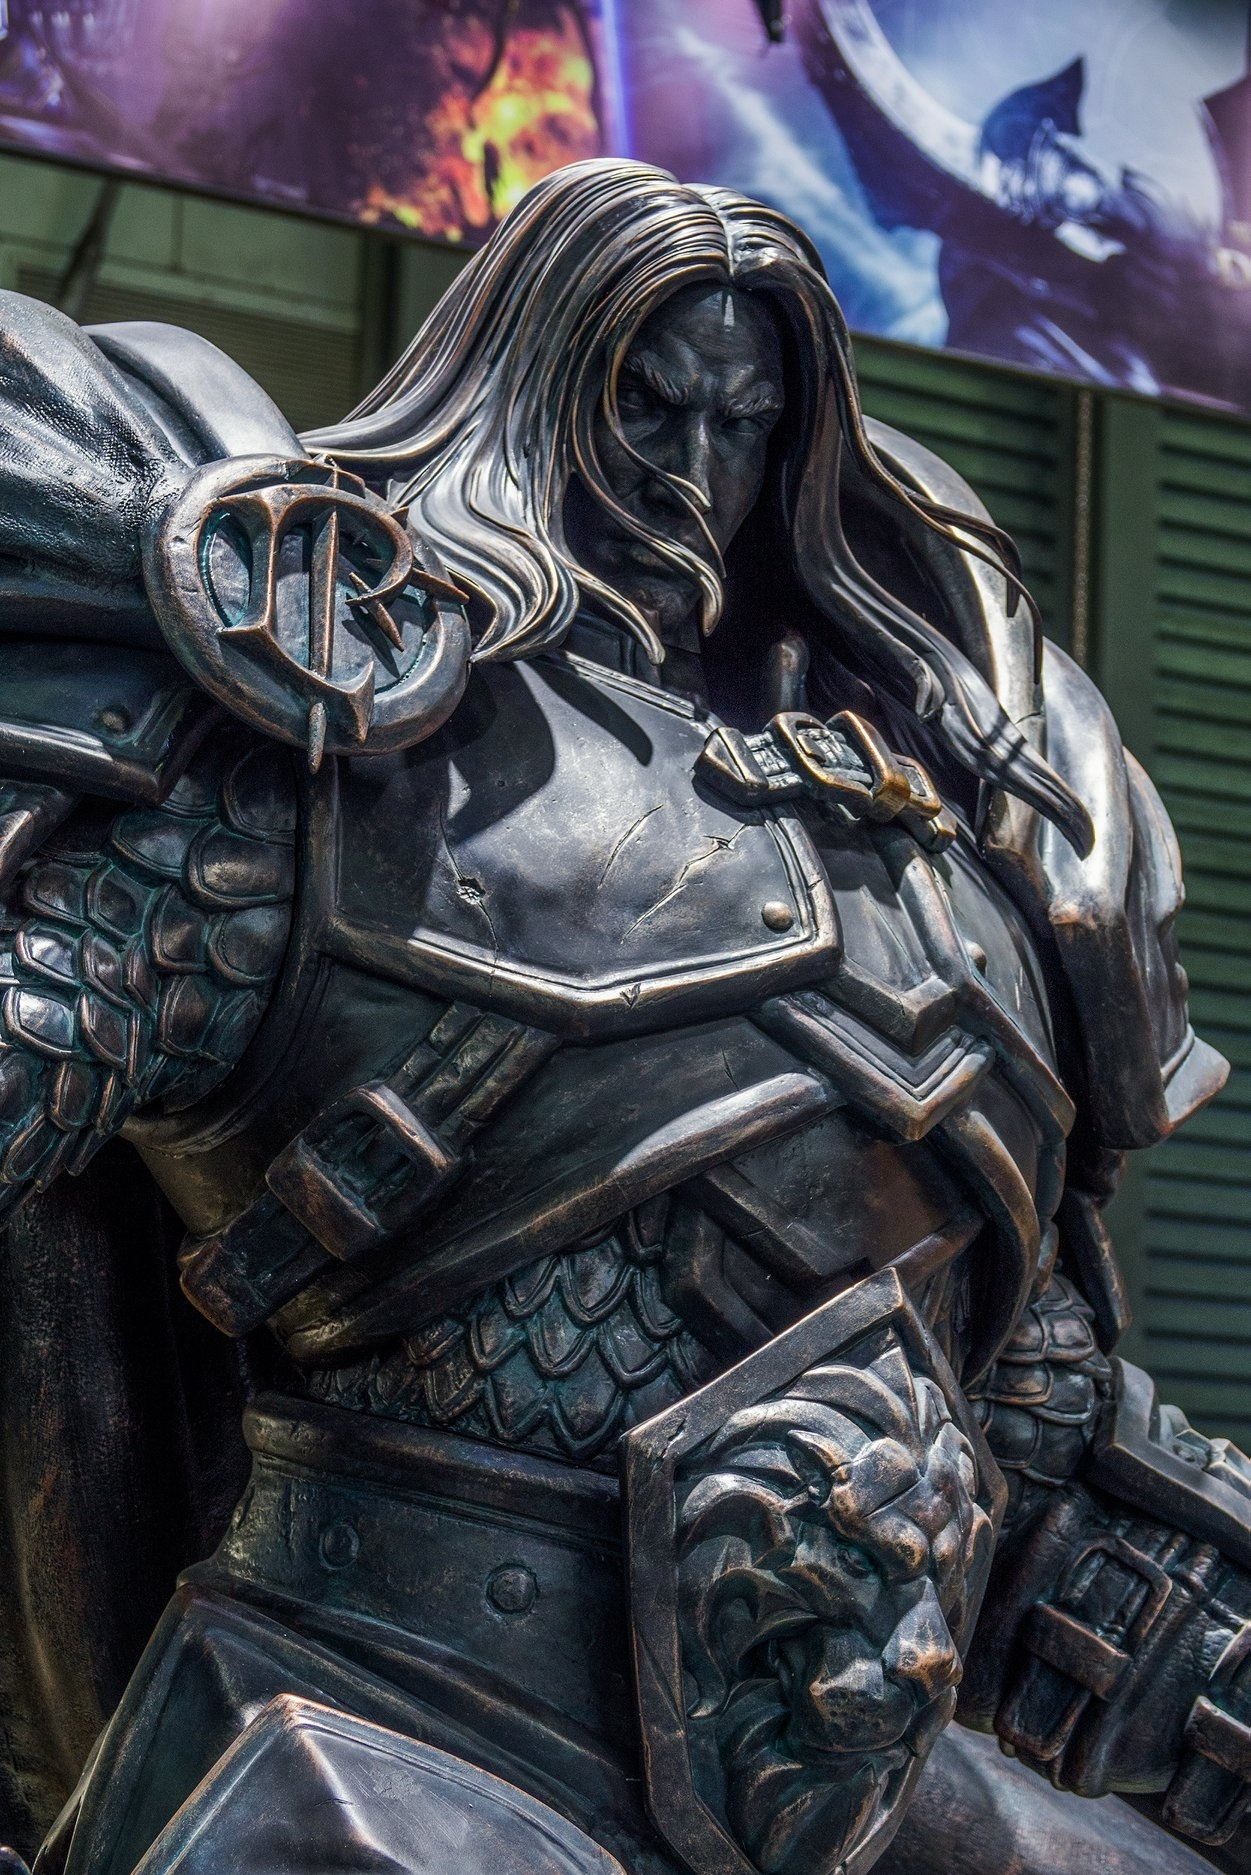 Arthas Menethil Statue By Infinity Studio Revealed At